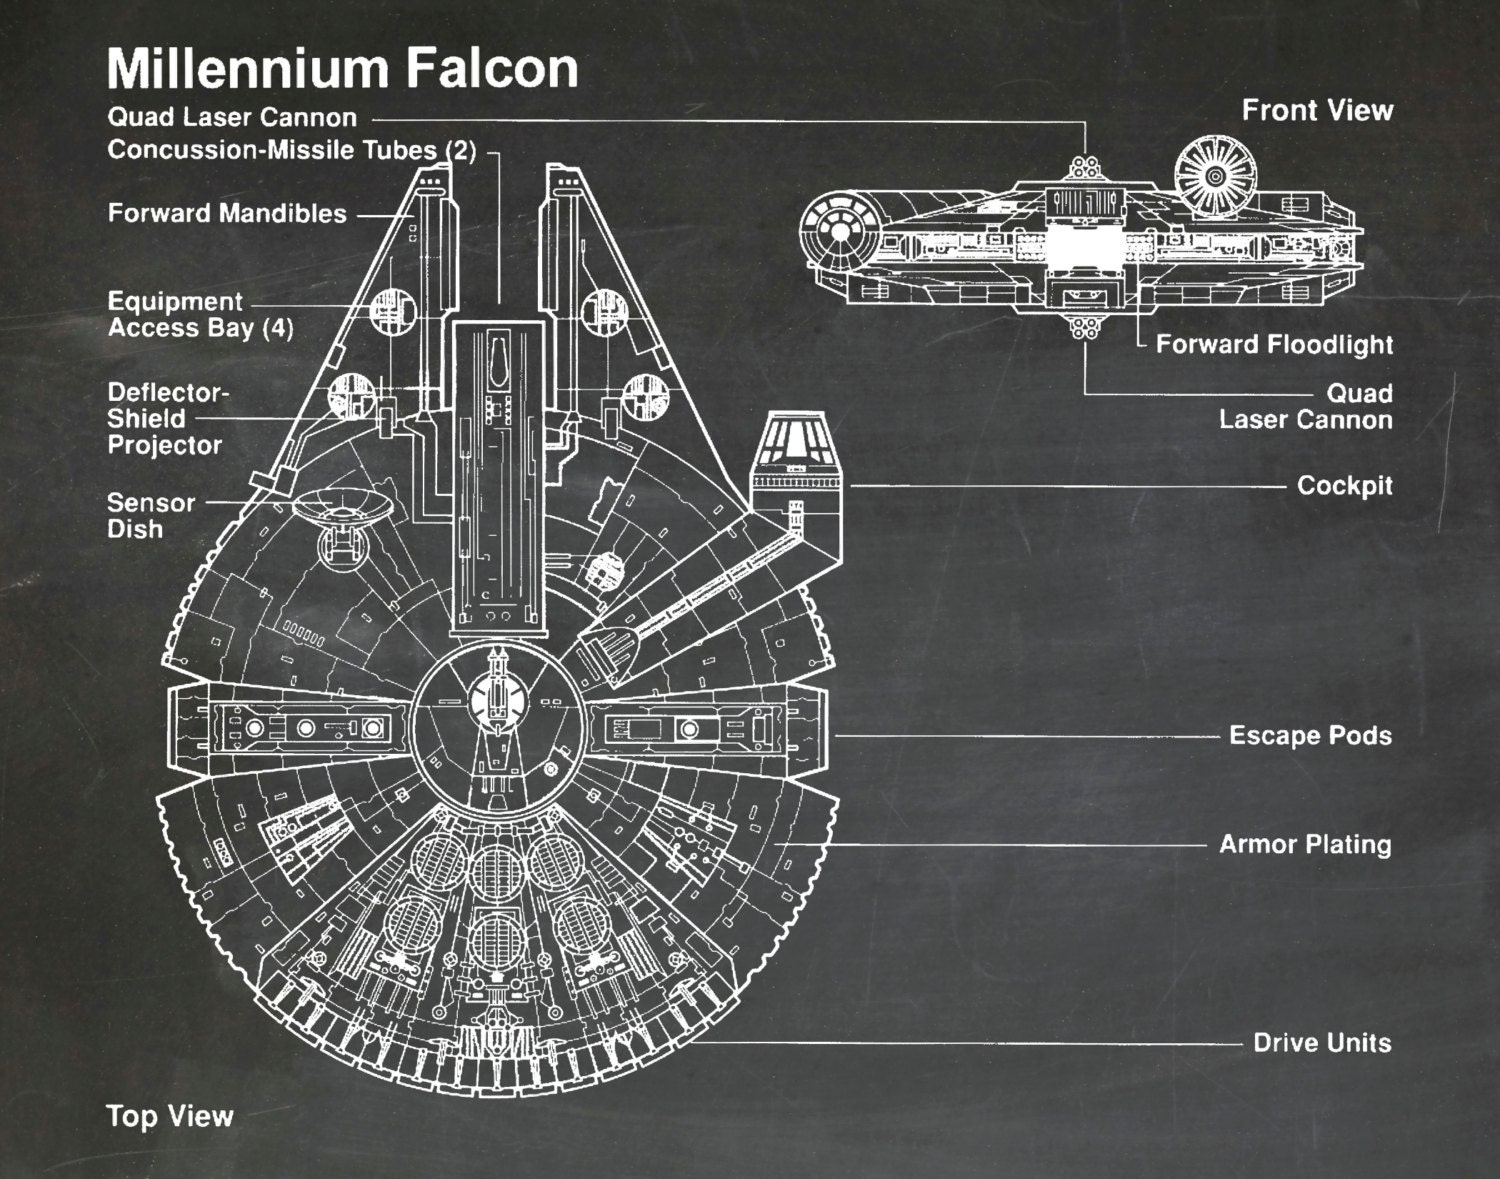 wall outlet engineering diagram star wars millennium falcon art print wall poster